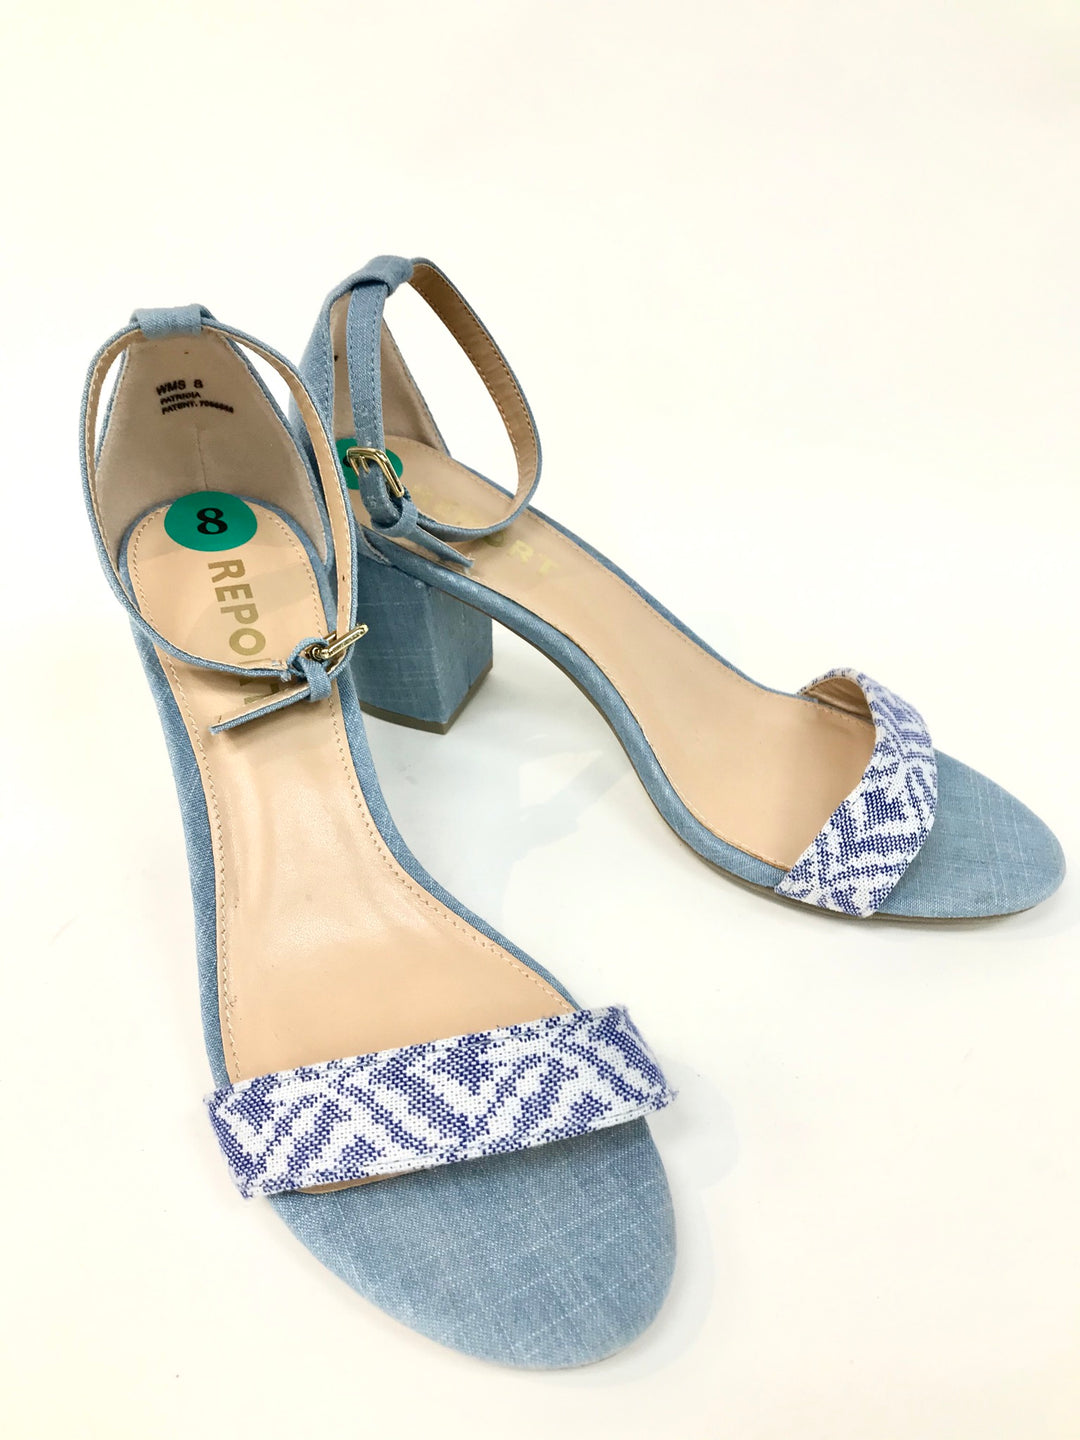 Primary Photo - BRAND: REPORT <BR>STYLE: SANDALS <BR>COLOR: DENIM <BR>SIZE: 8 <BR>SKU: 262-26275-49060